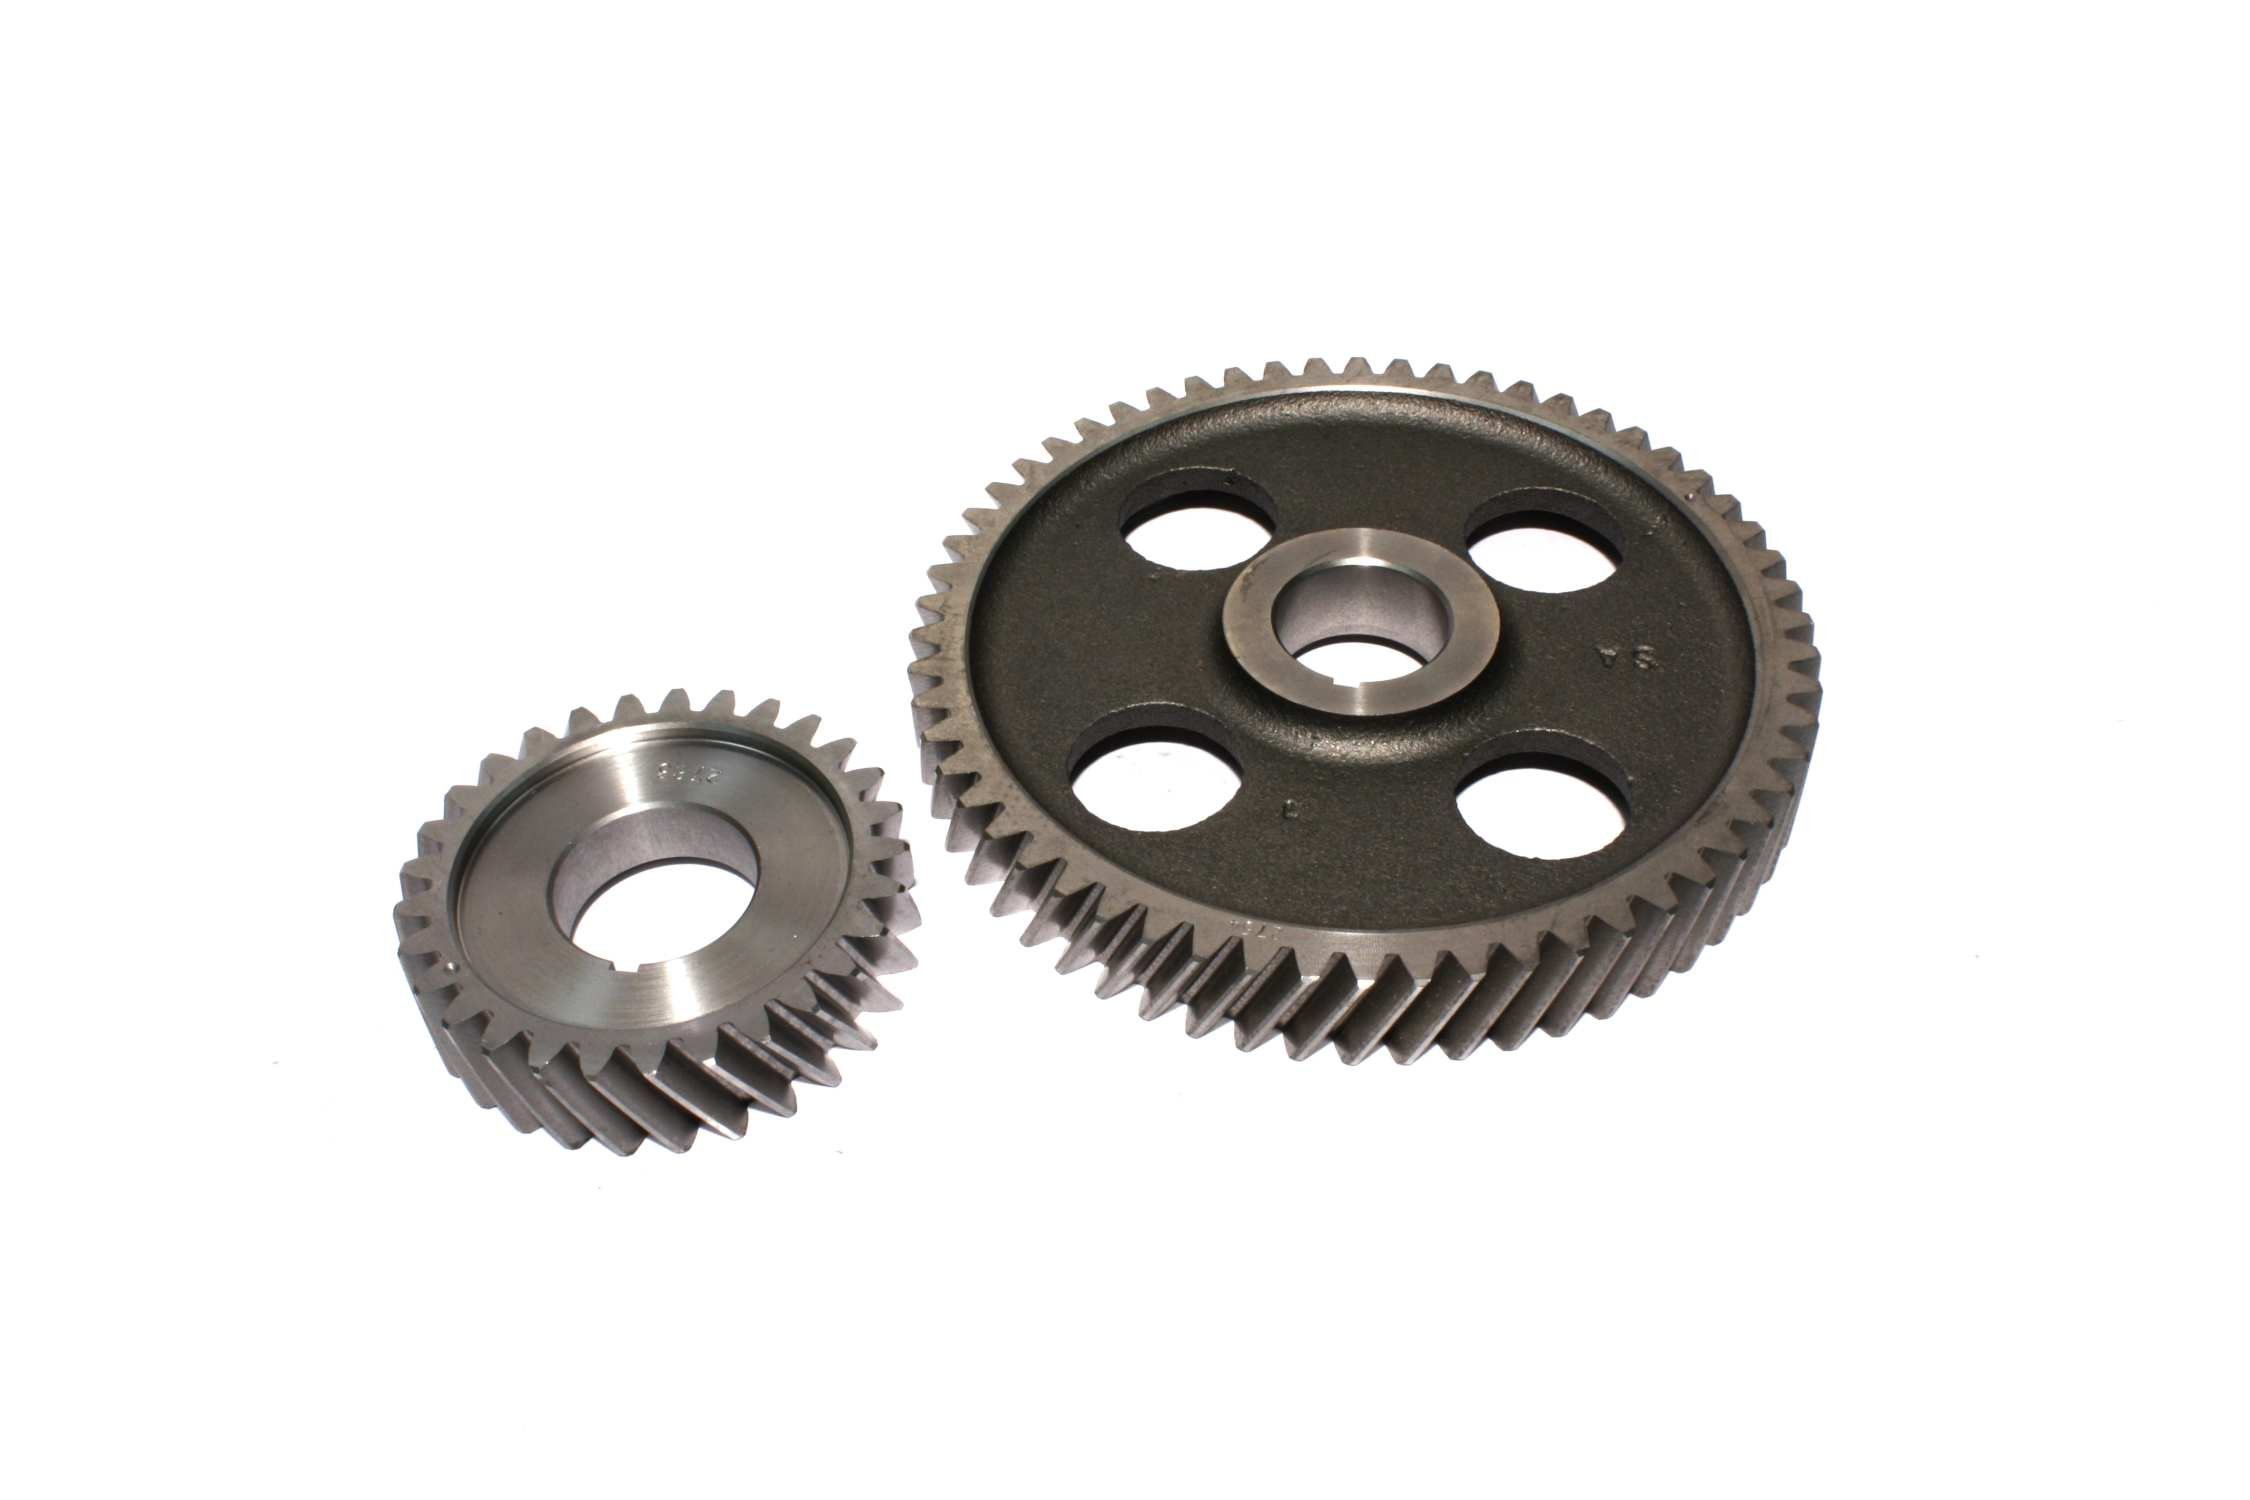 COMP Cams 3224 Gear to Gear Set for Ford 6-Cylinder by Comp Cams